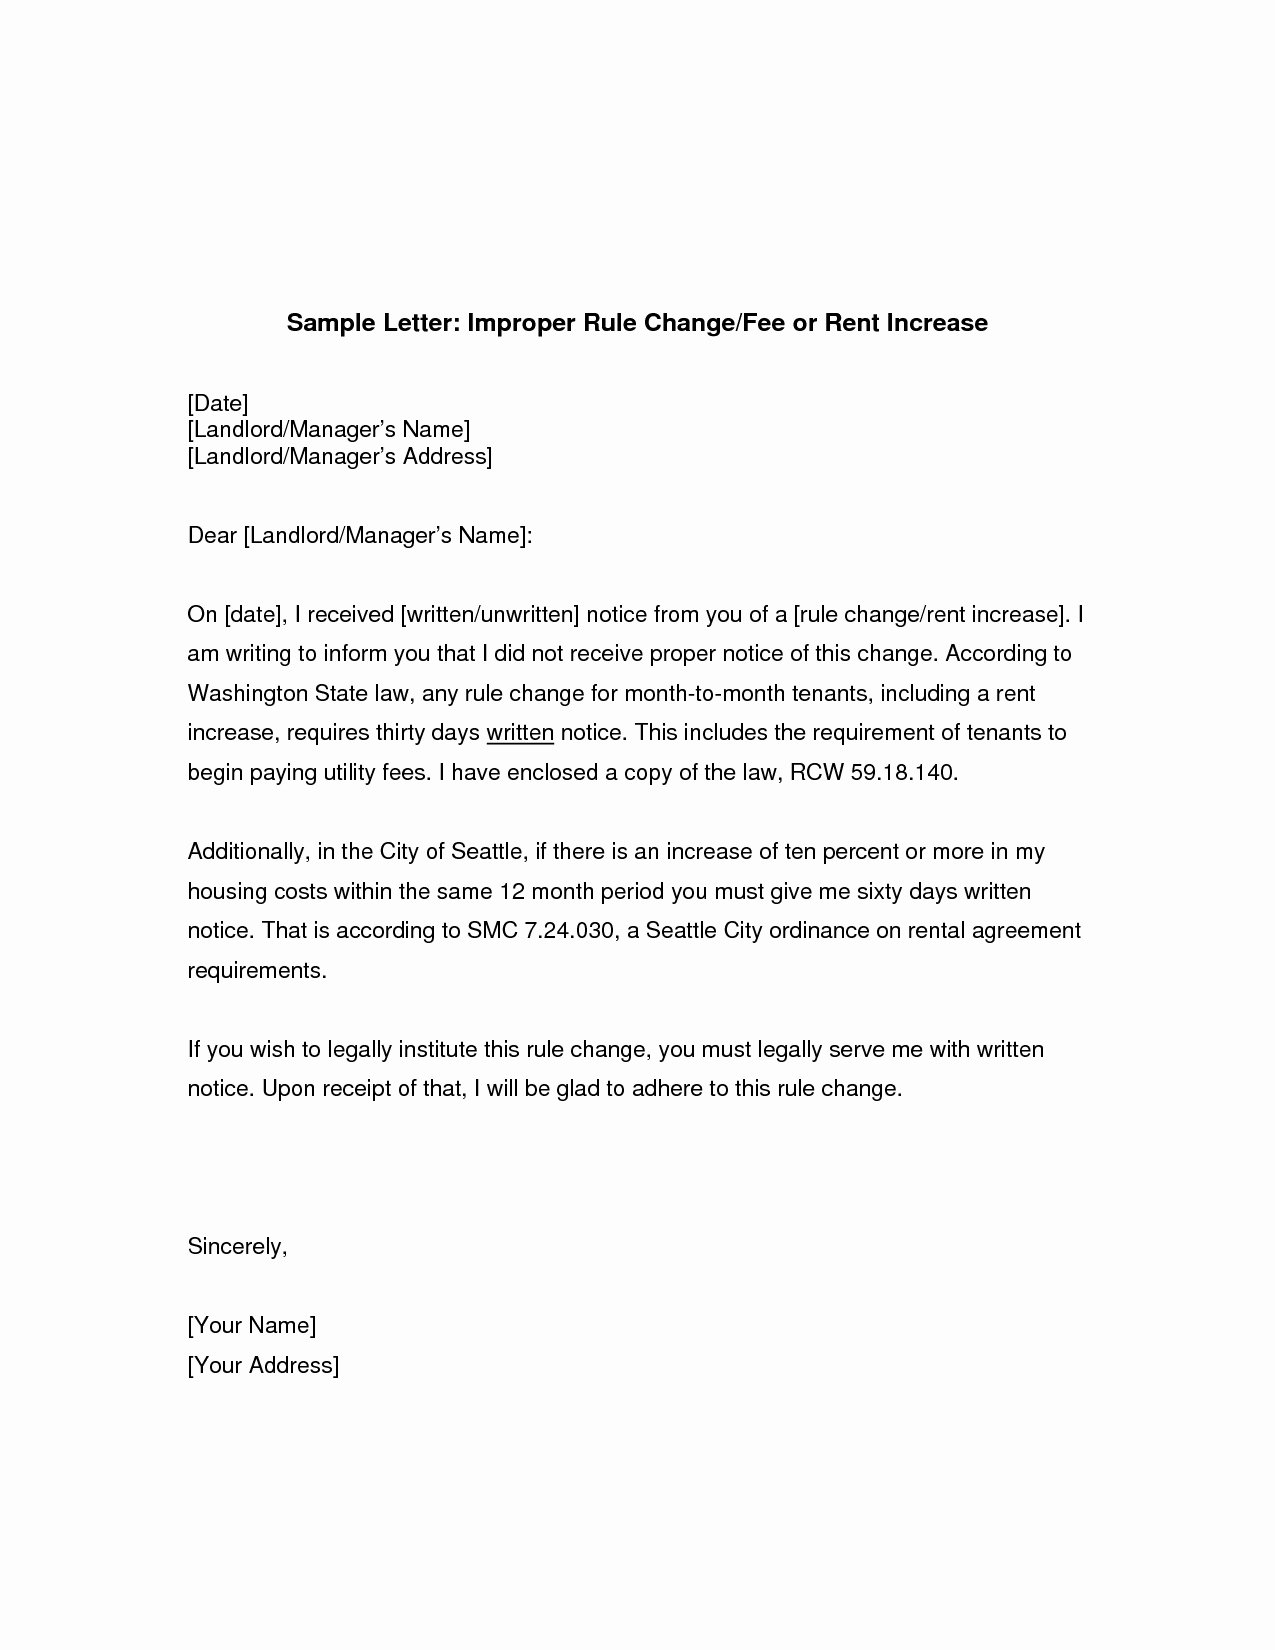 Sample Rent Increase Letter New Change Ownership Letter to Tenants Template Examples